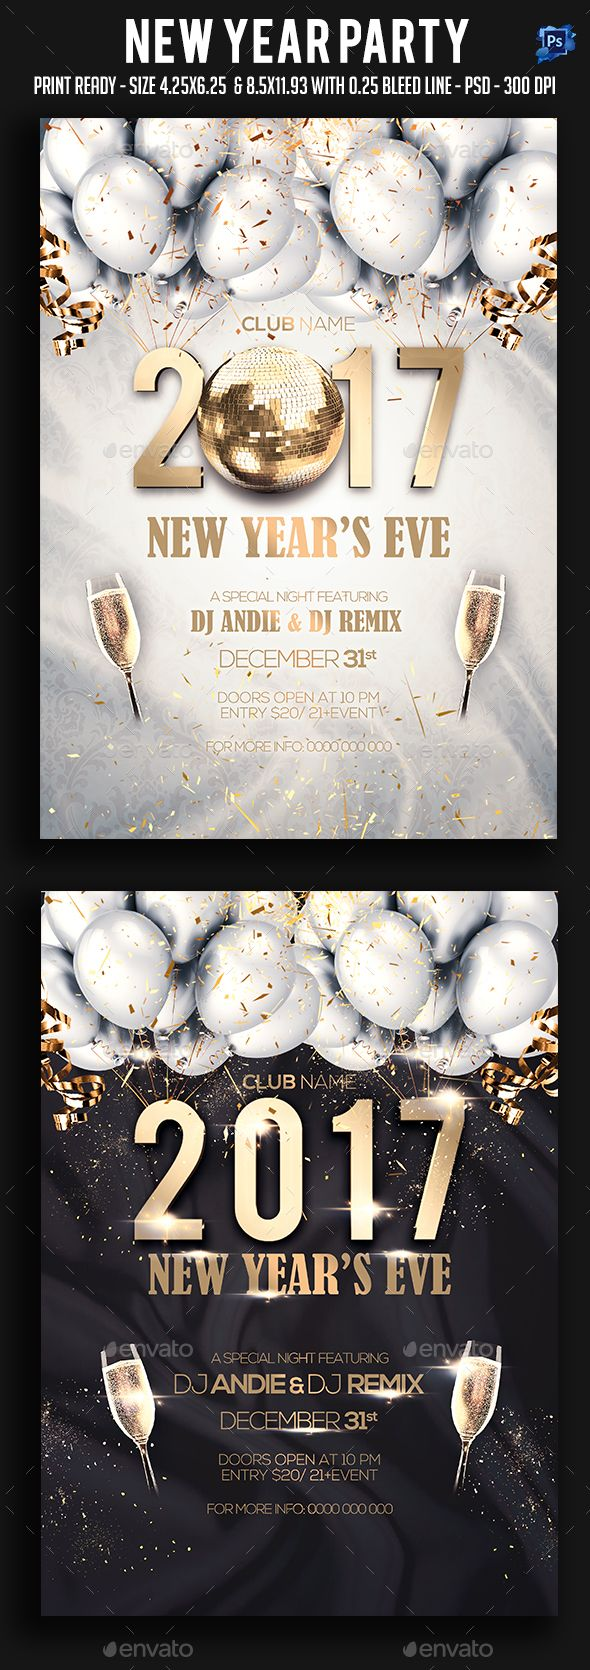 New Year Party Flyer - Clubs & Parties Events | flyers | Pinterest ...